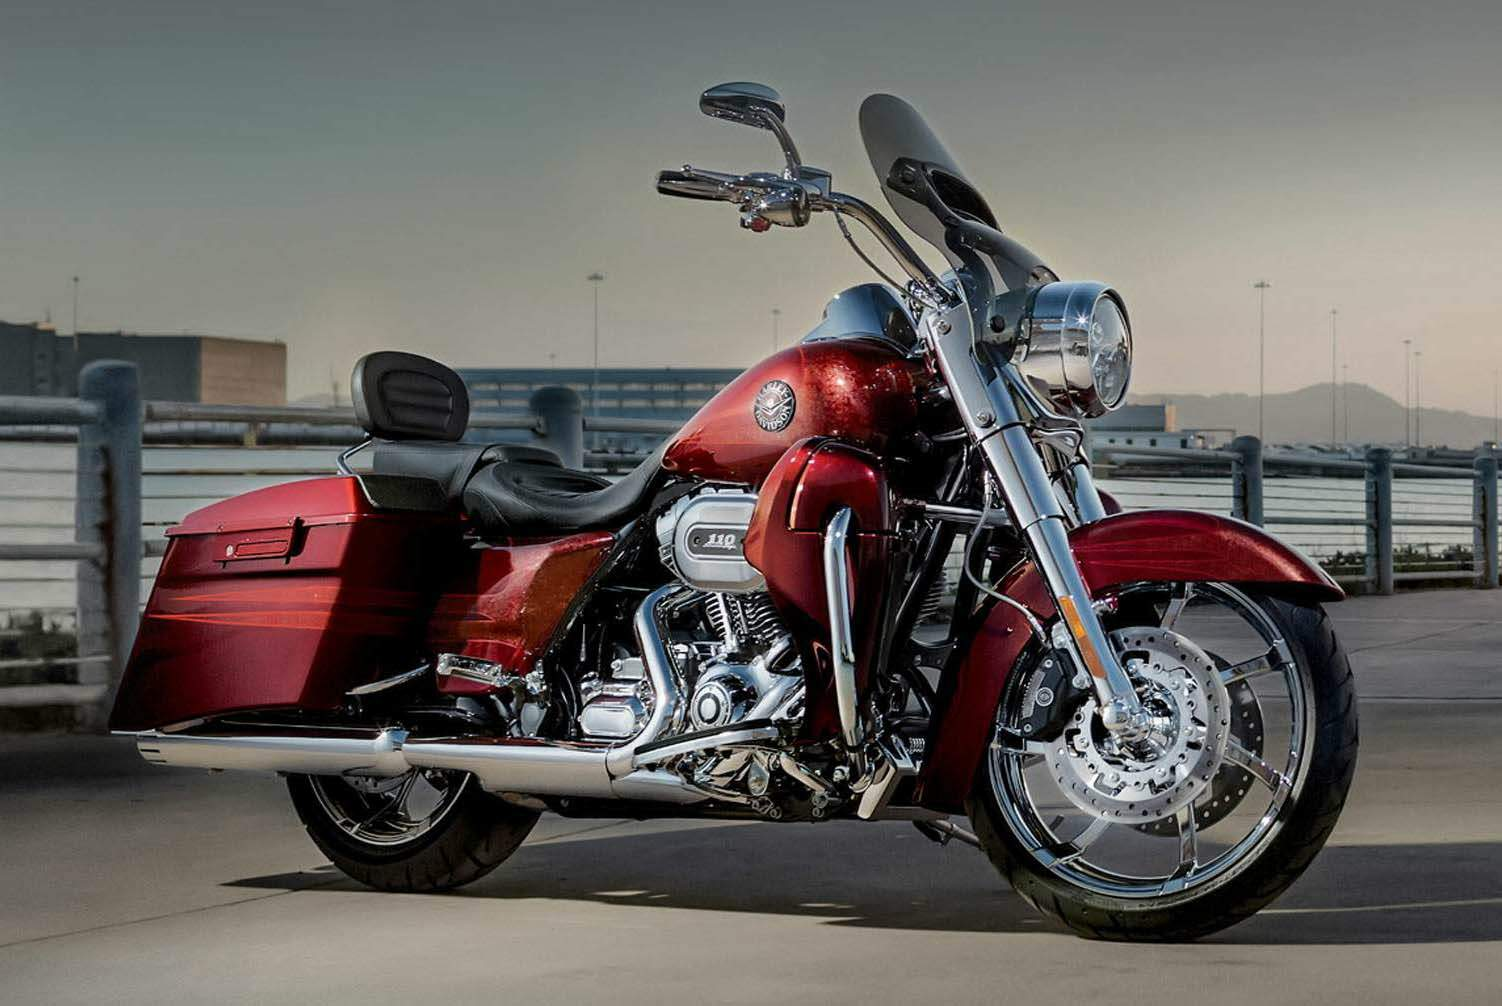 Мотоцикл Harley Davidson FLHR Road King CVO 110th Anniversary 2013